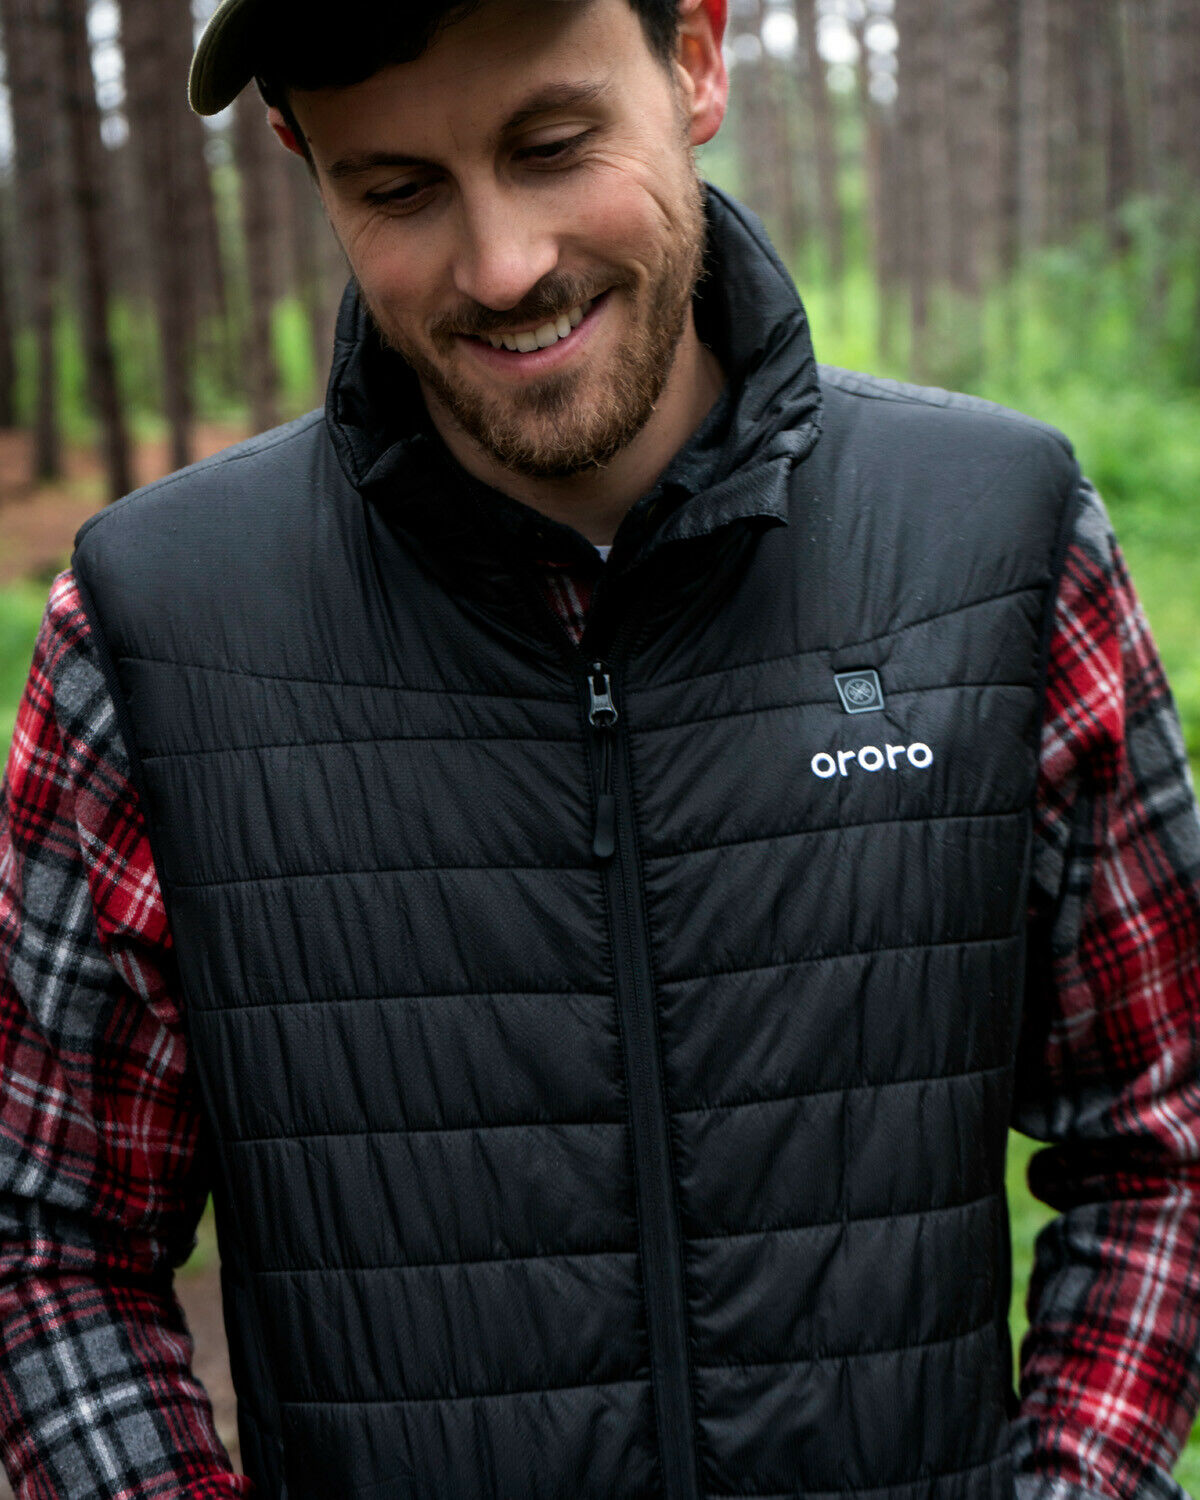 goldRO Mens Heated Warm Vest  With Battery Sleeveless Winter Outdoor Coat Skiing  cheap sale